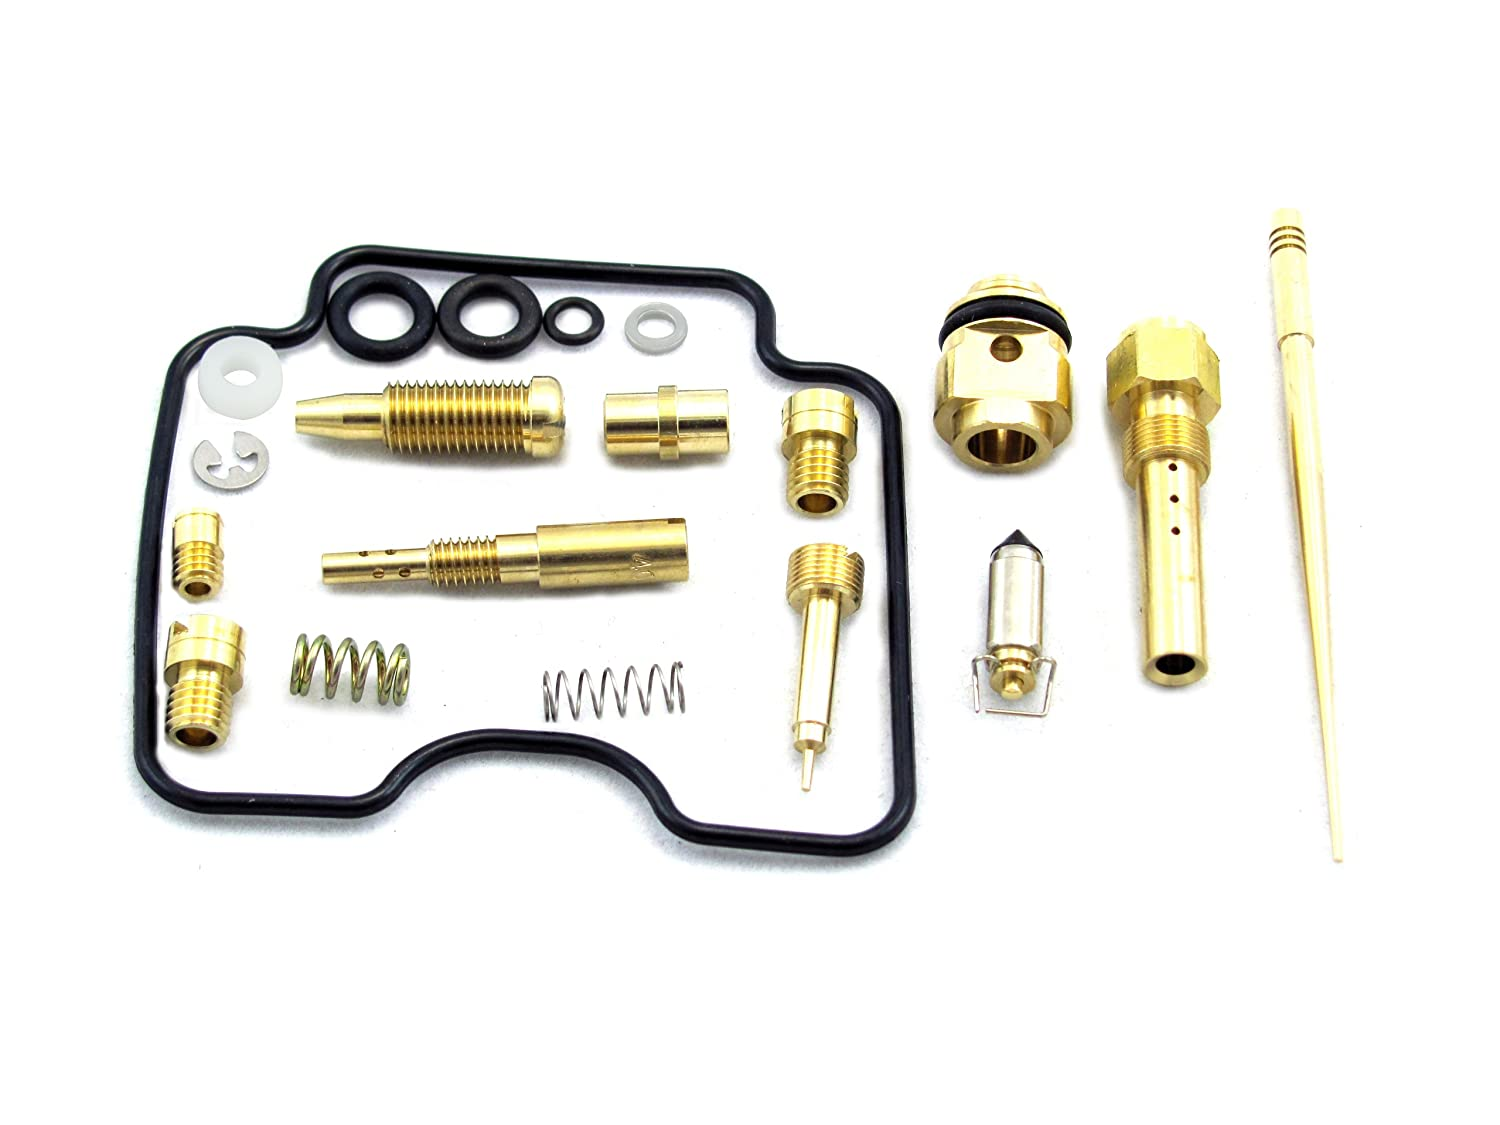 Freedom County ATV FC03318 Carburetor Rebuild Kit for Yamaha YFM660 Grizzly